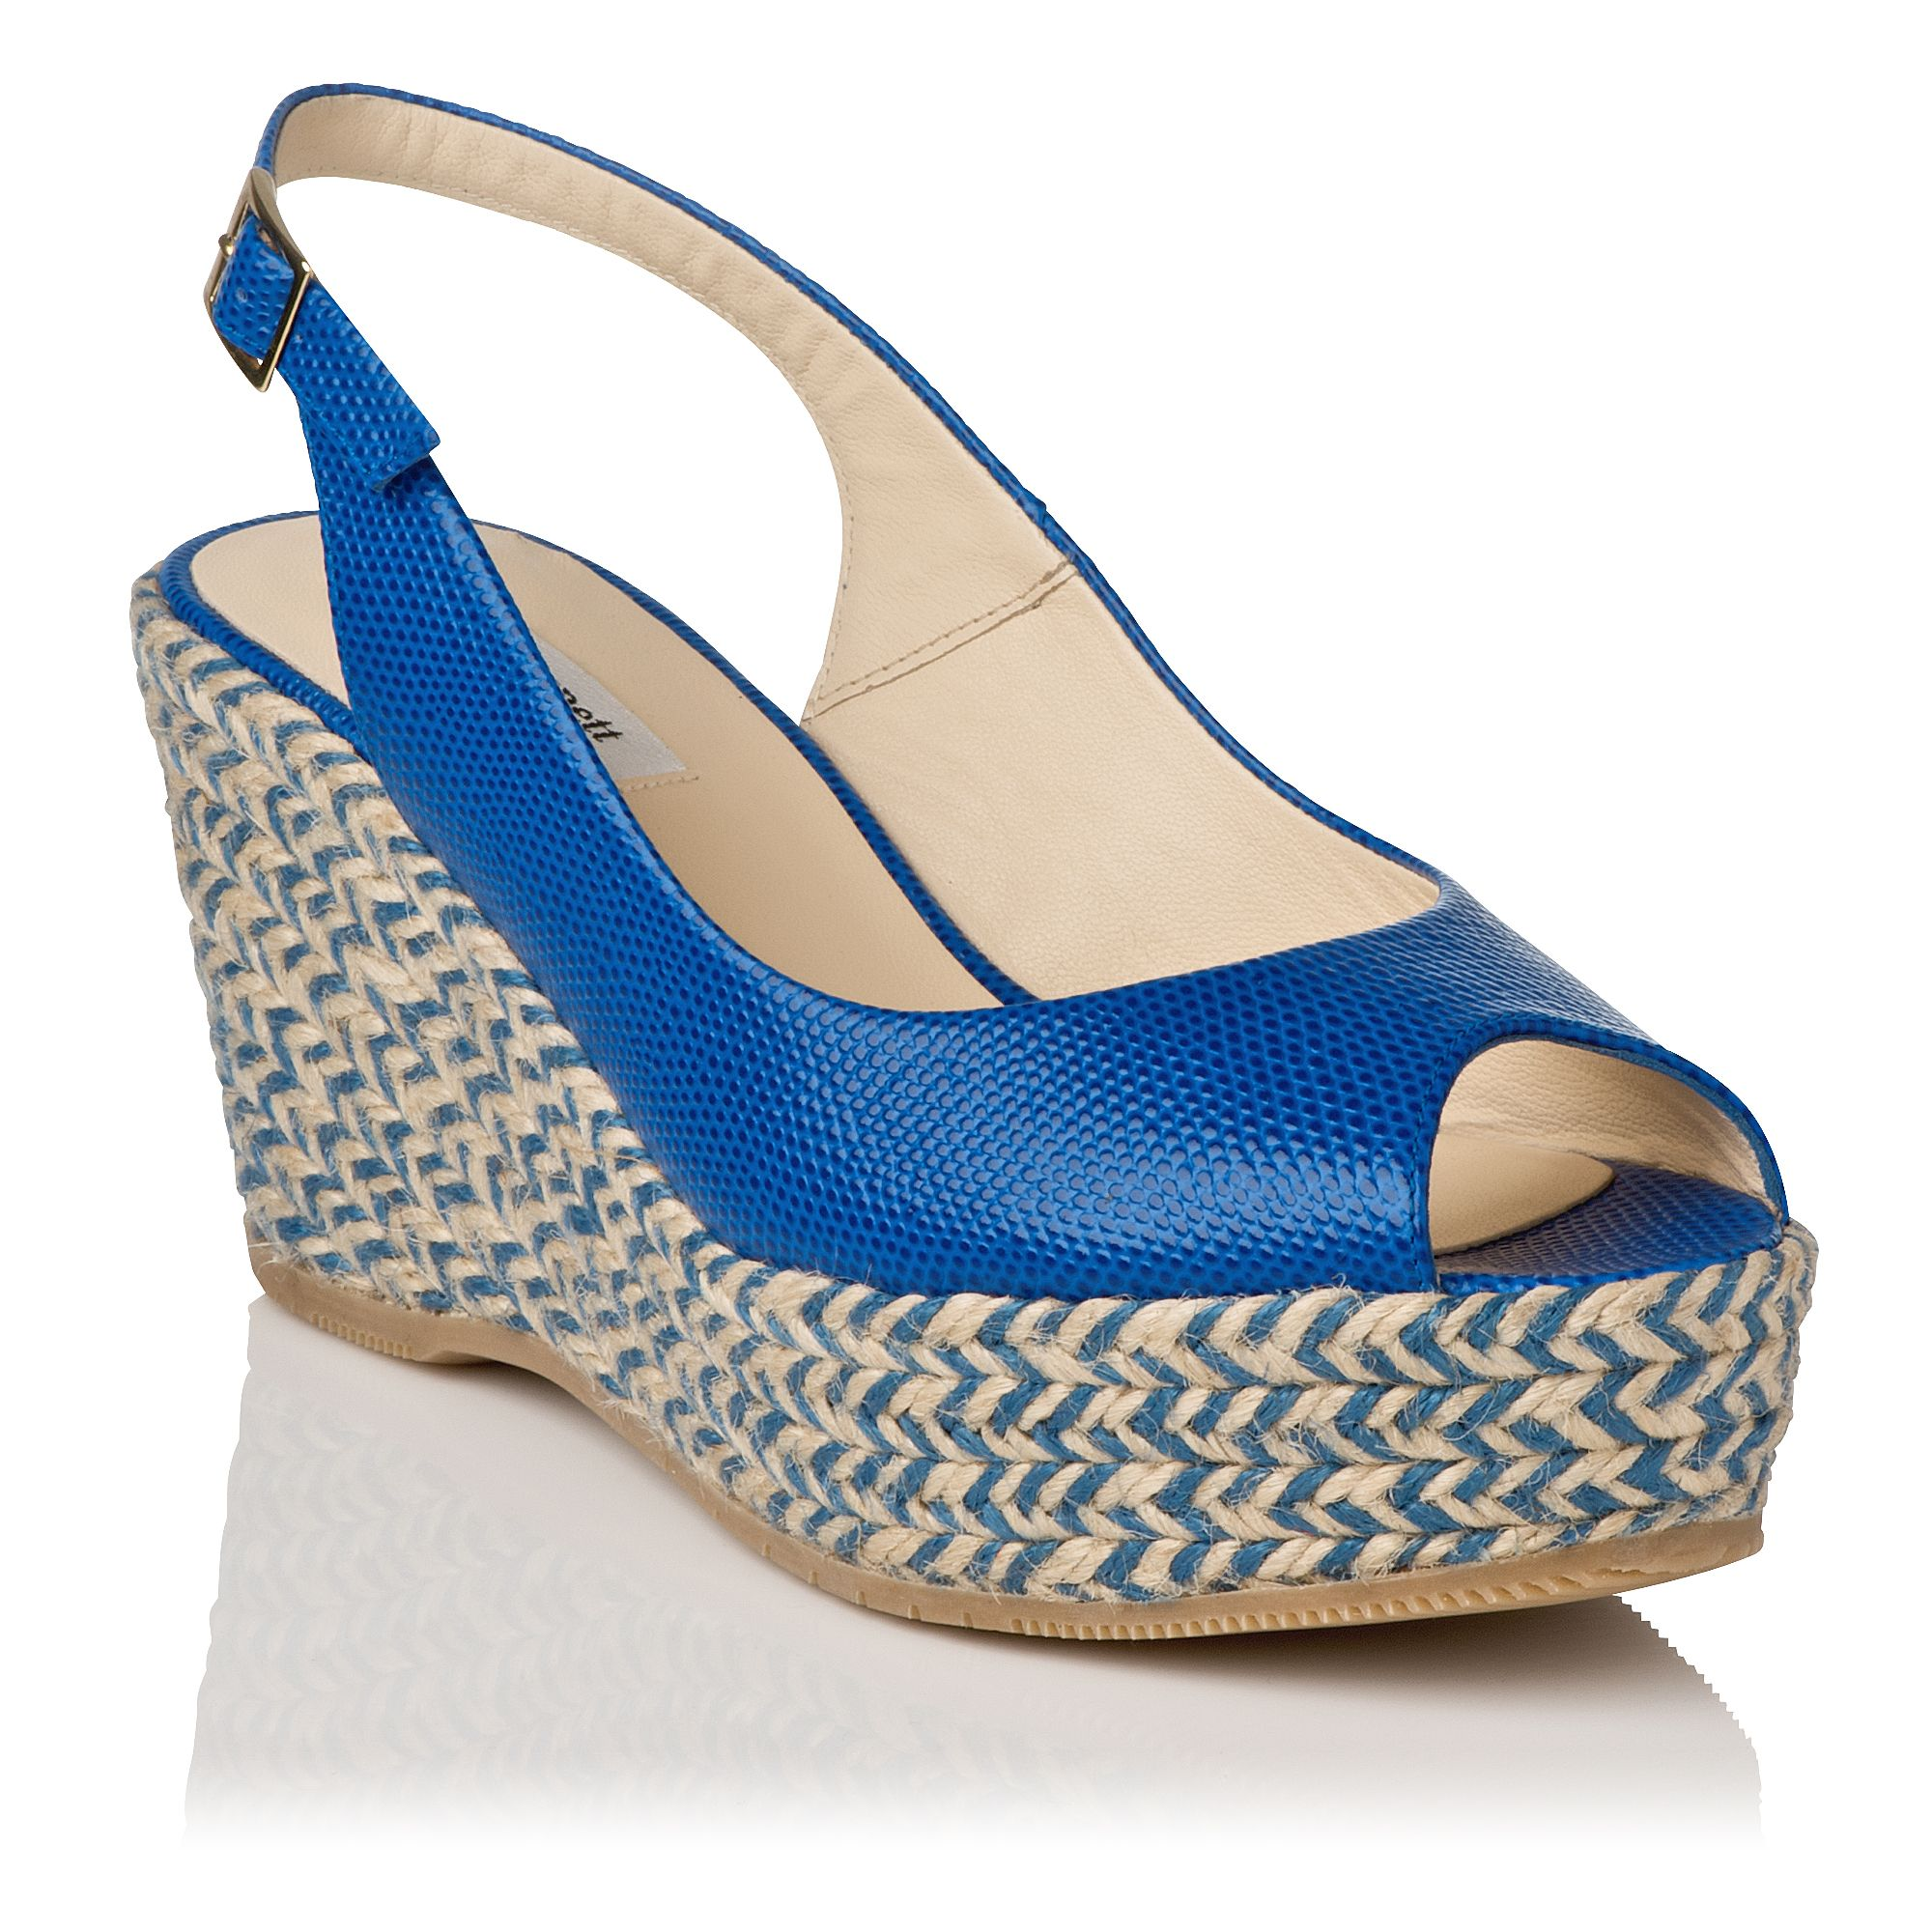 April suede open toe slingback wedge shoes